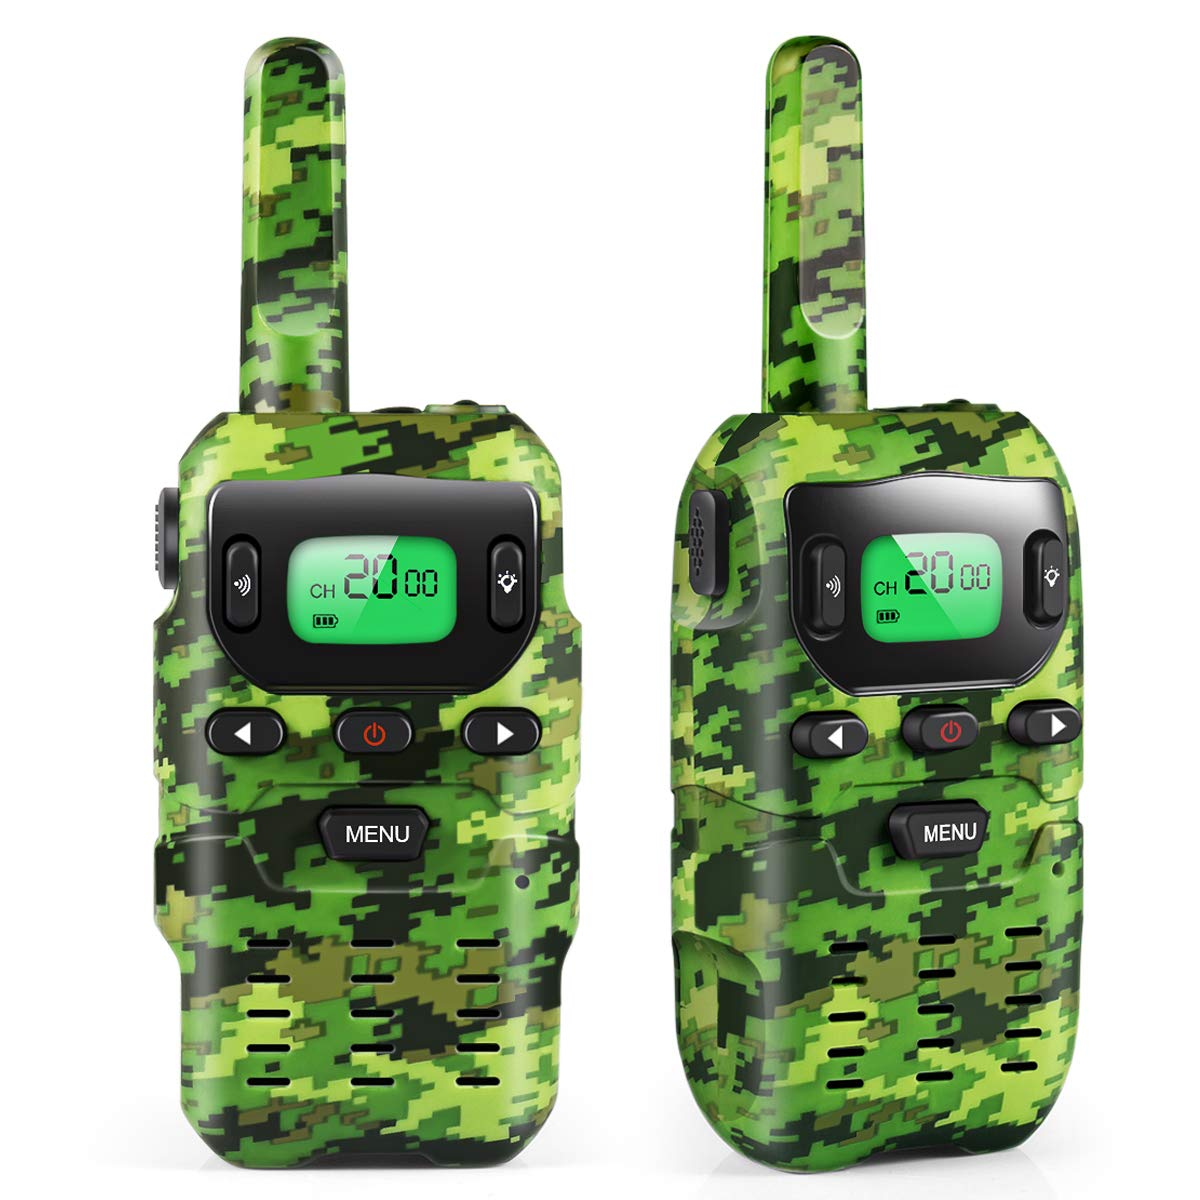 UOKOO Walkie Talkies for Kids, Toys for 3-12 Year Old Boys 22 Channel 3 Mile Long Range Kids Toys and Kids Walkie Talkies, and Top Toys for for 3 4 5 6 7 8 9 Year Old Boy and Girls